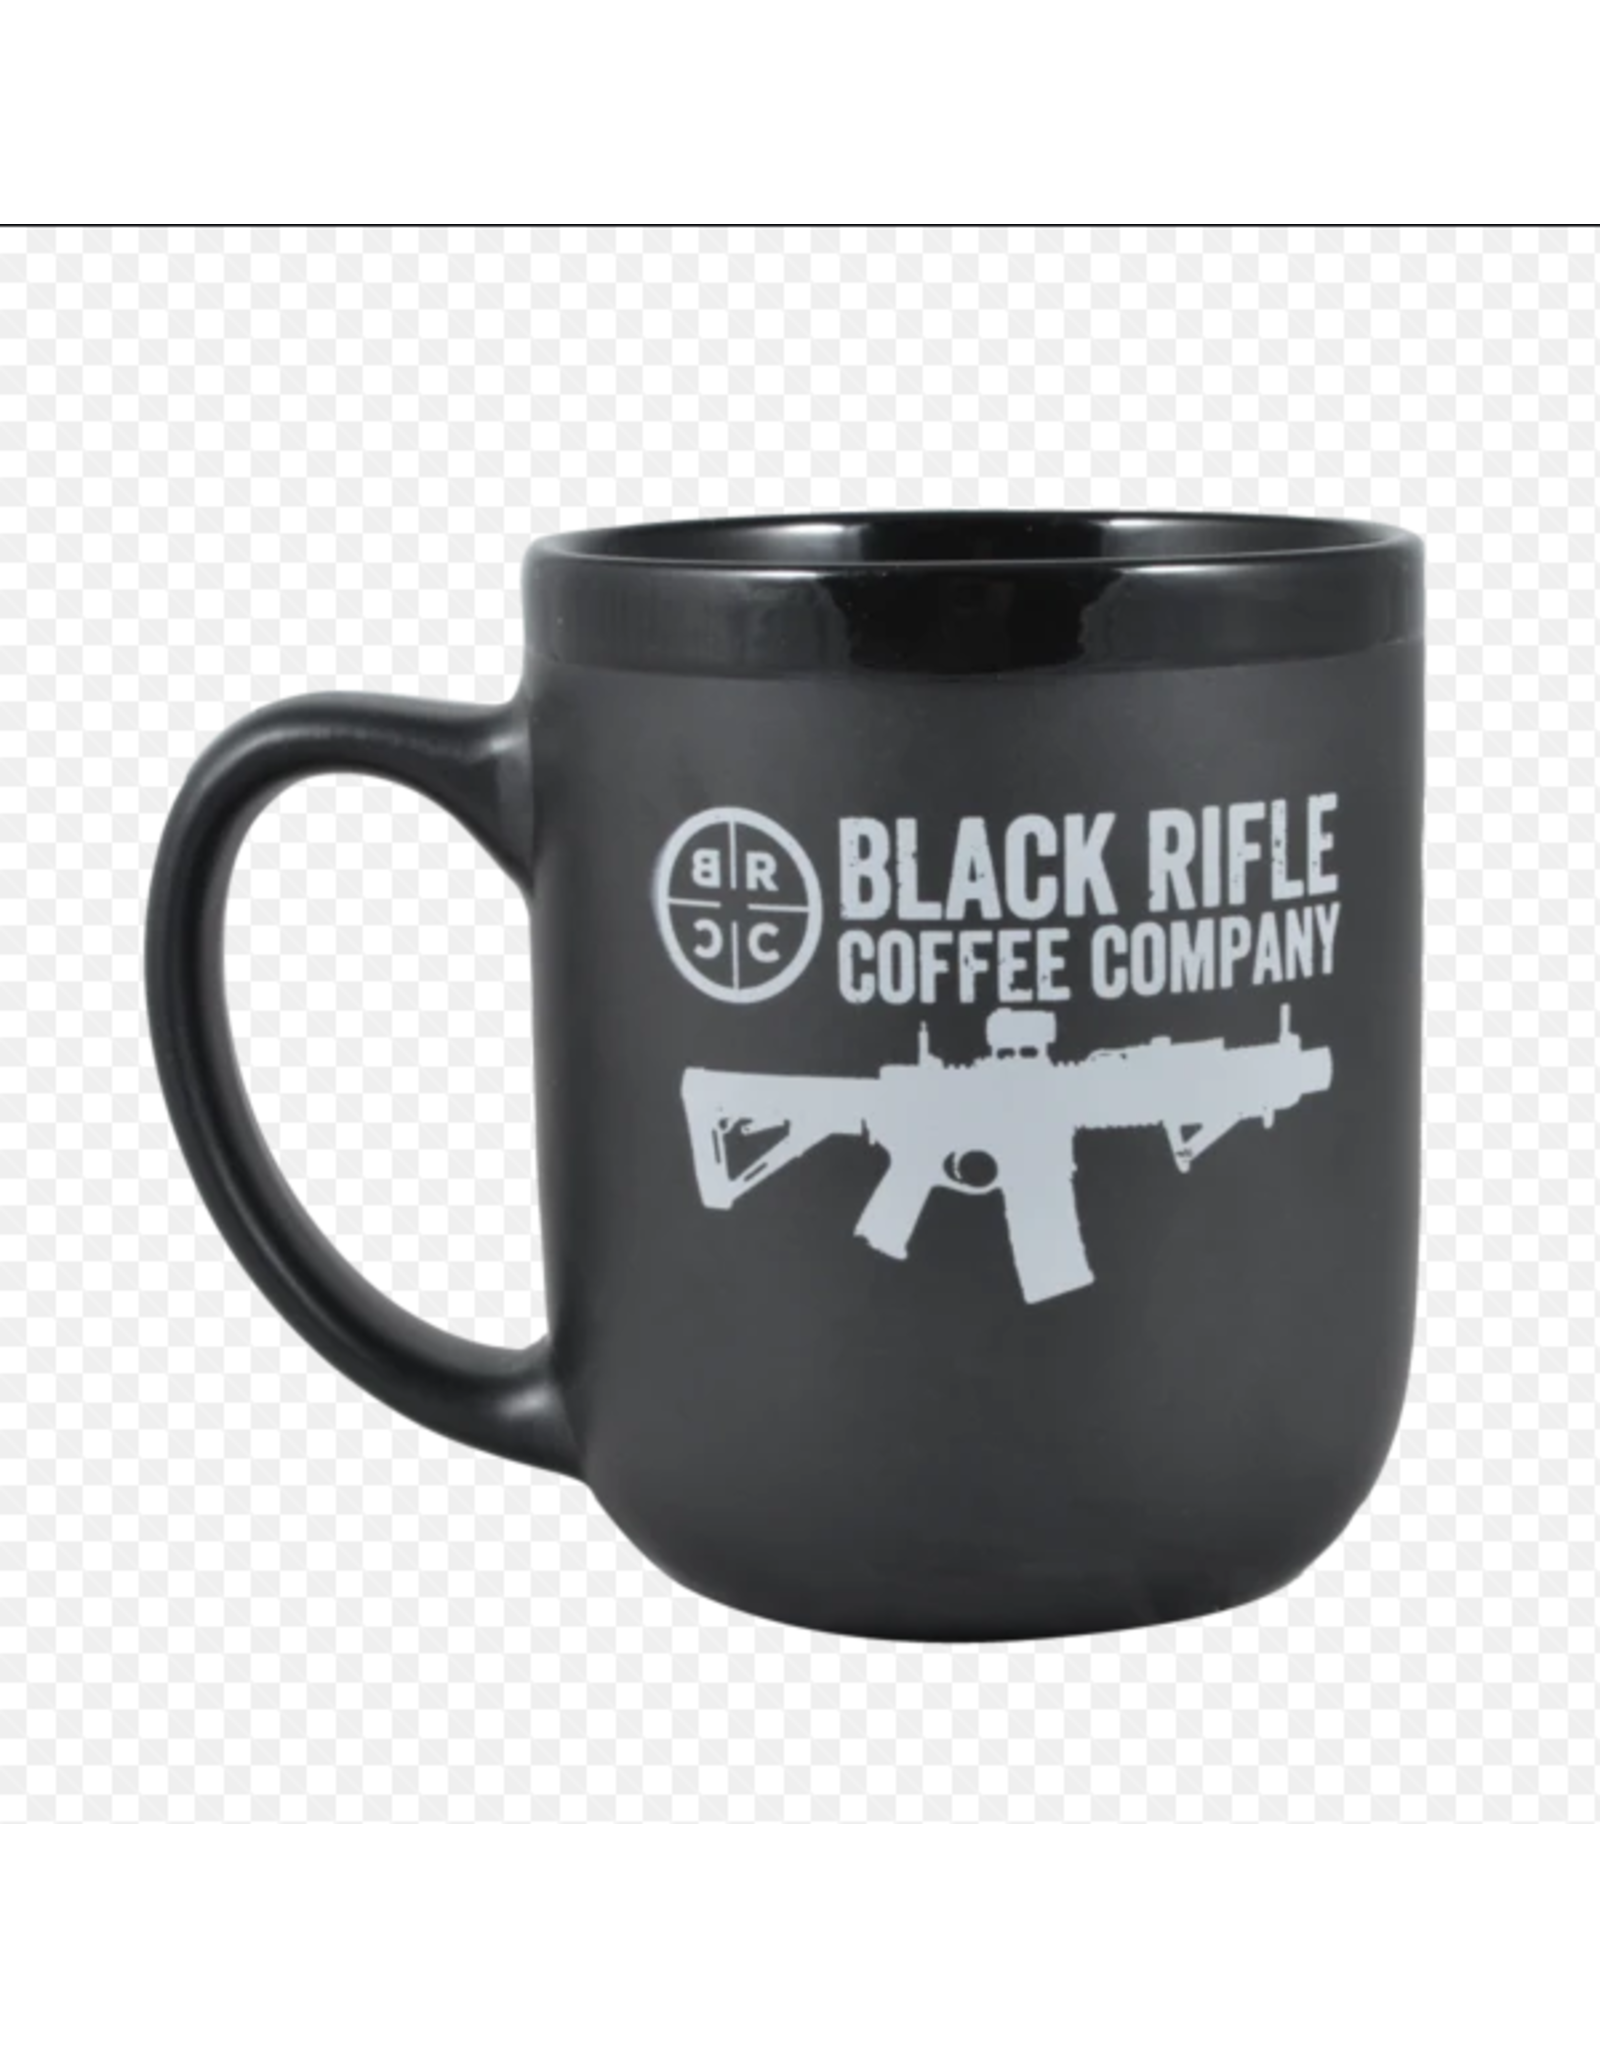 BLack Rifle Coffee Black Rifle Coffee Ceramic BRCC Coffee Mug